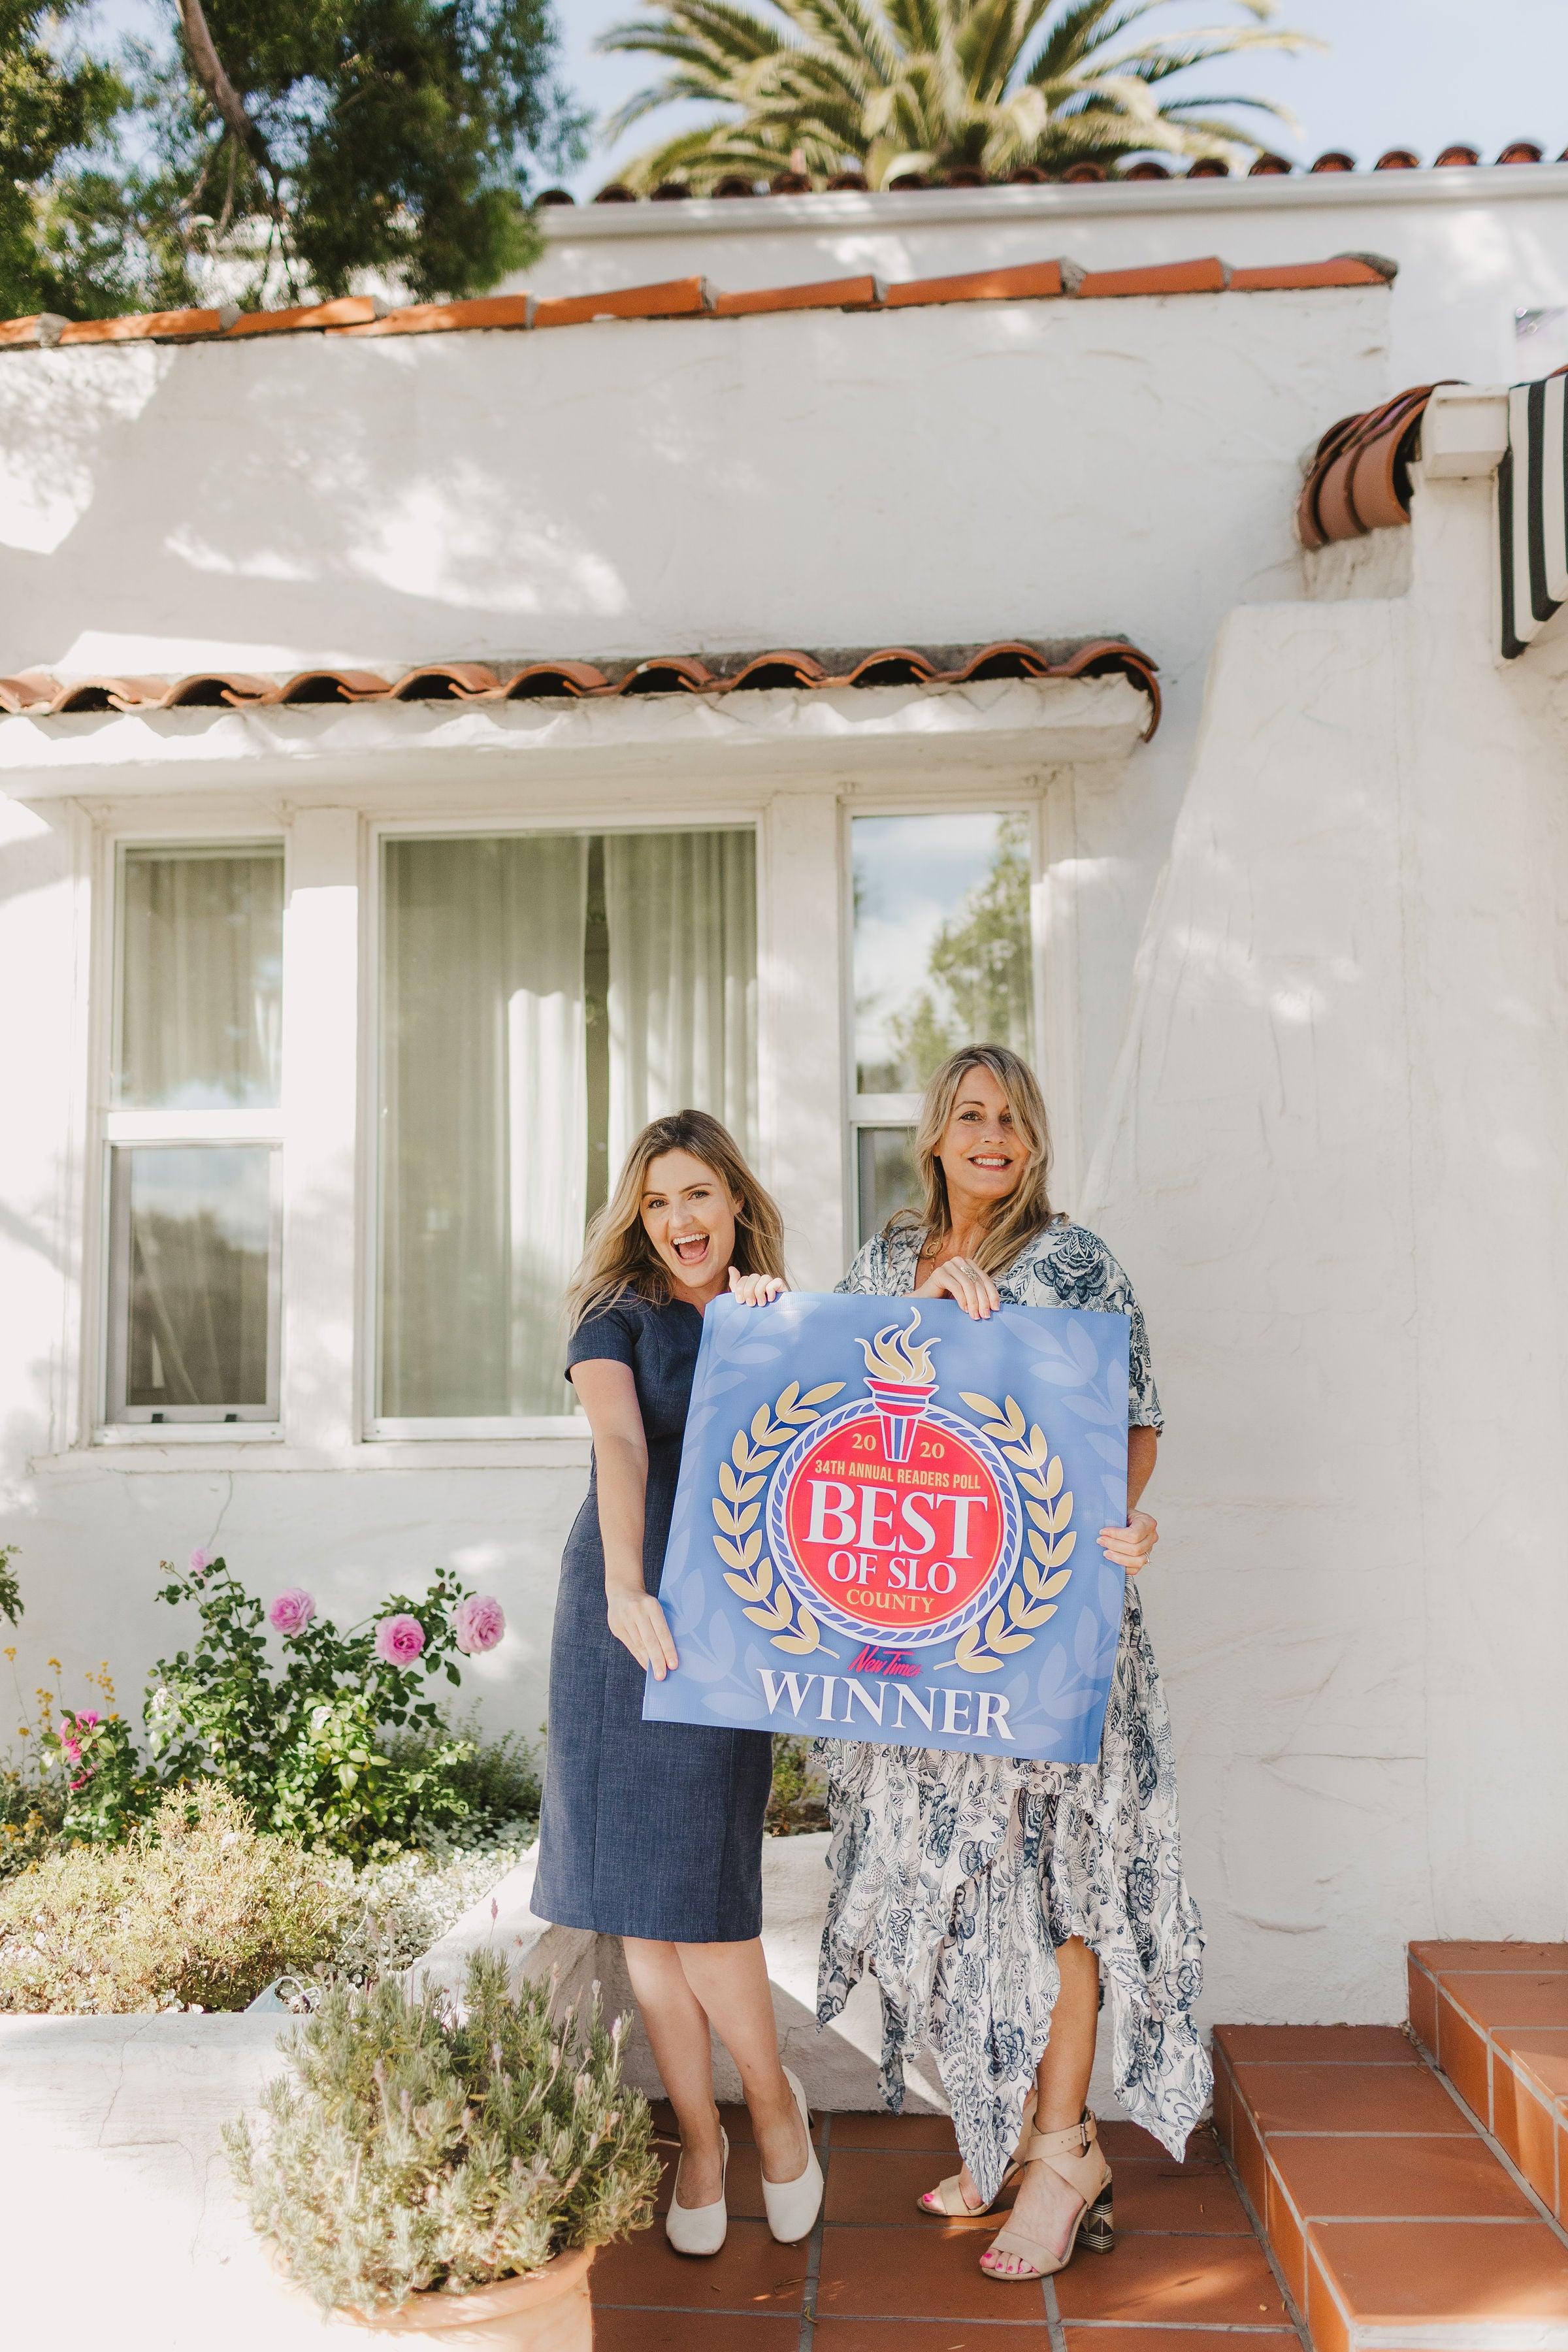 Mother daughter owners holding best of slo sign